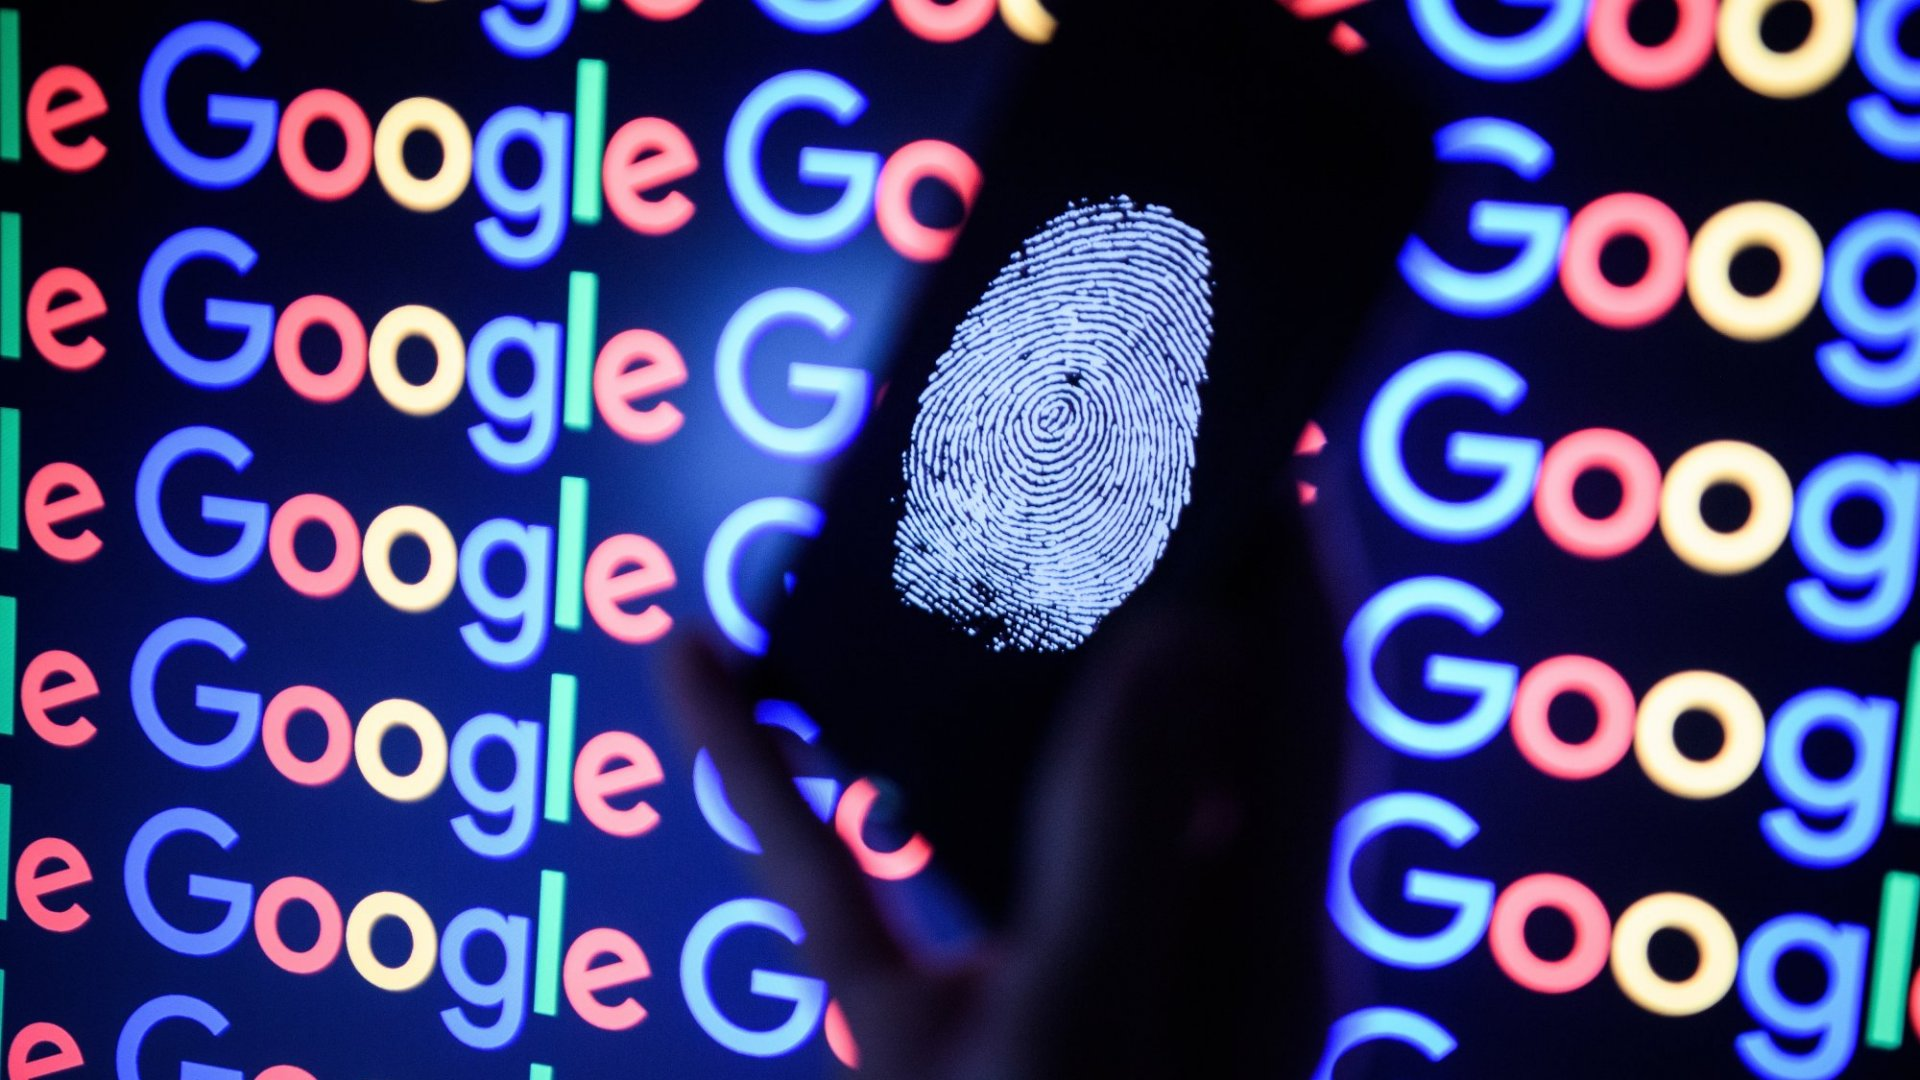 Google Extends Its Highest Level of Account Security to iPhones